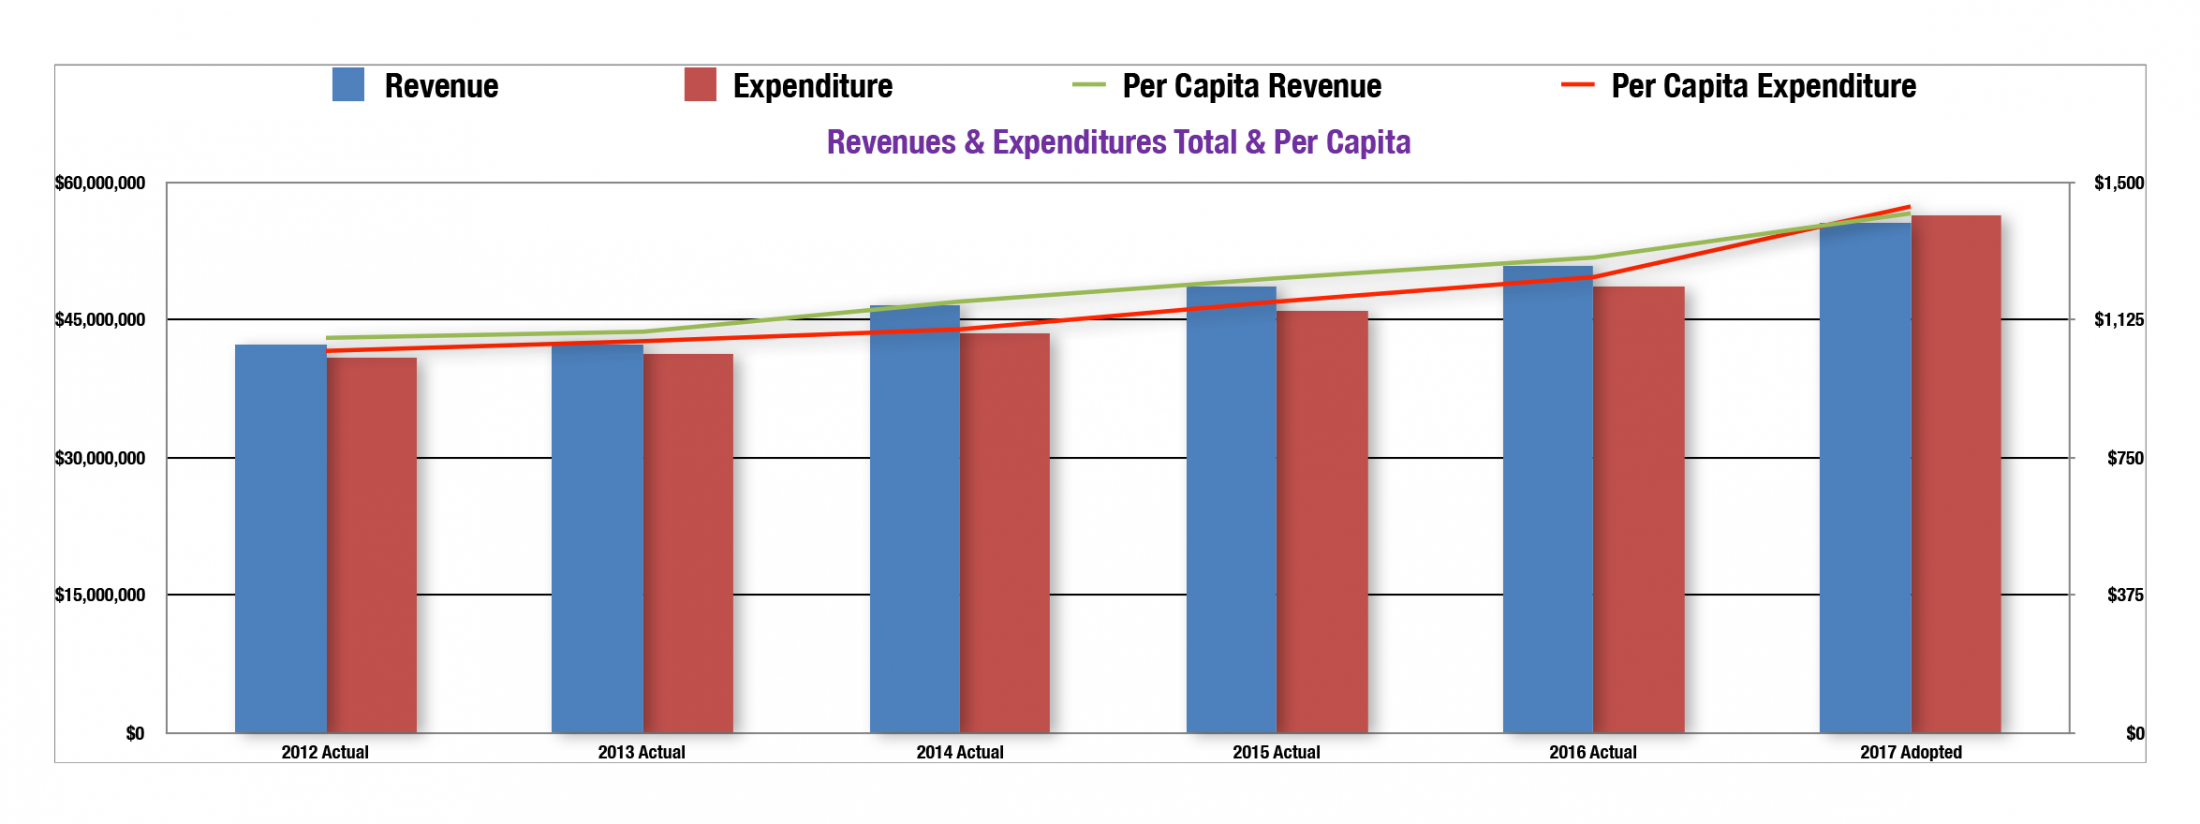 Per Capita Revenue & Expenditure